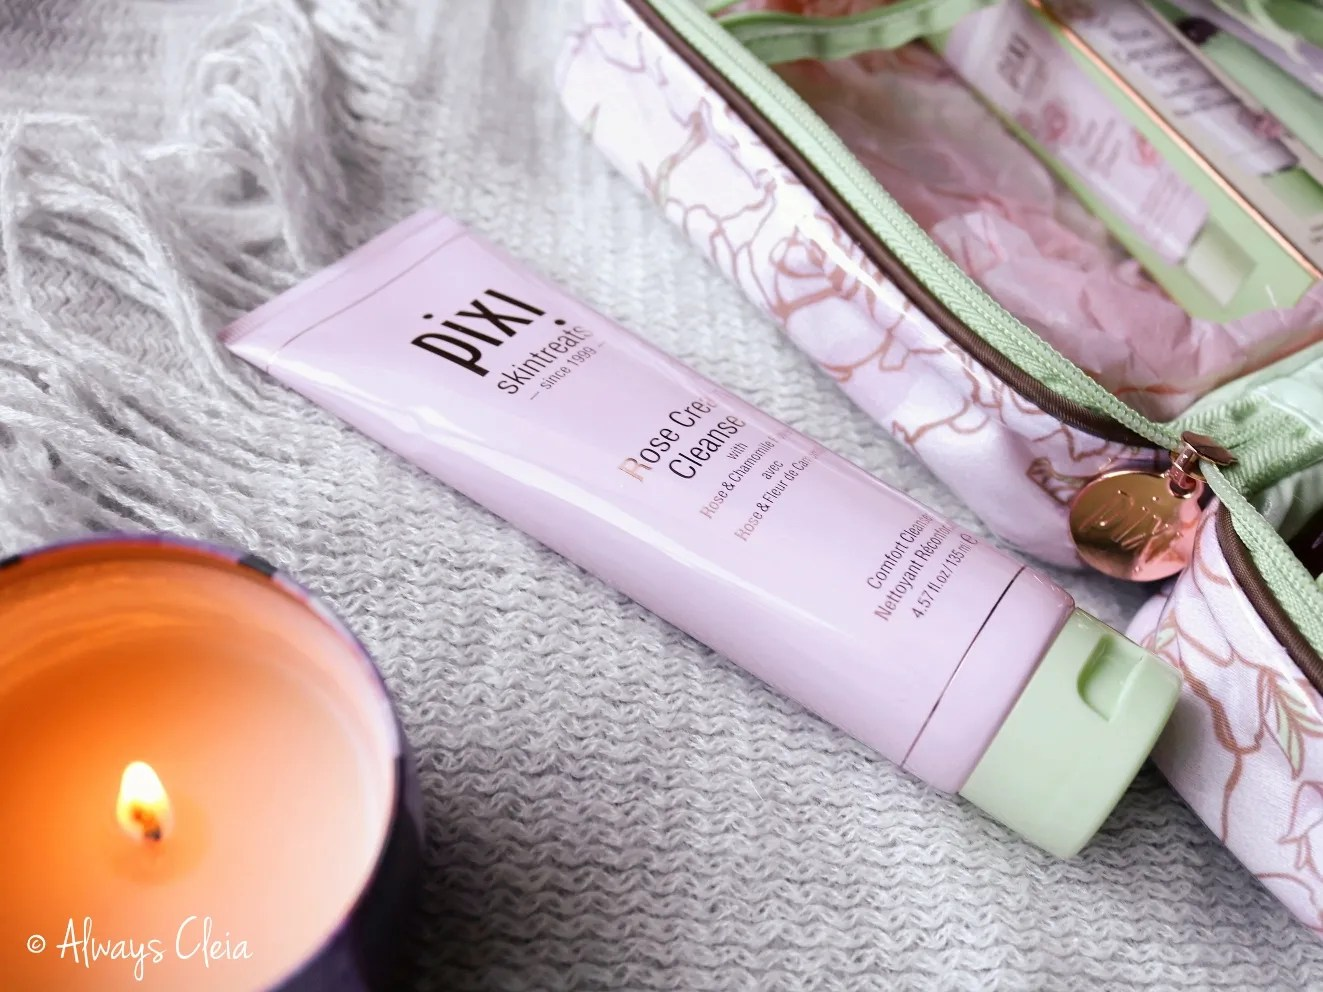 Pixi by Petra Rose Cream Cleanser